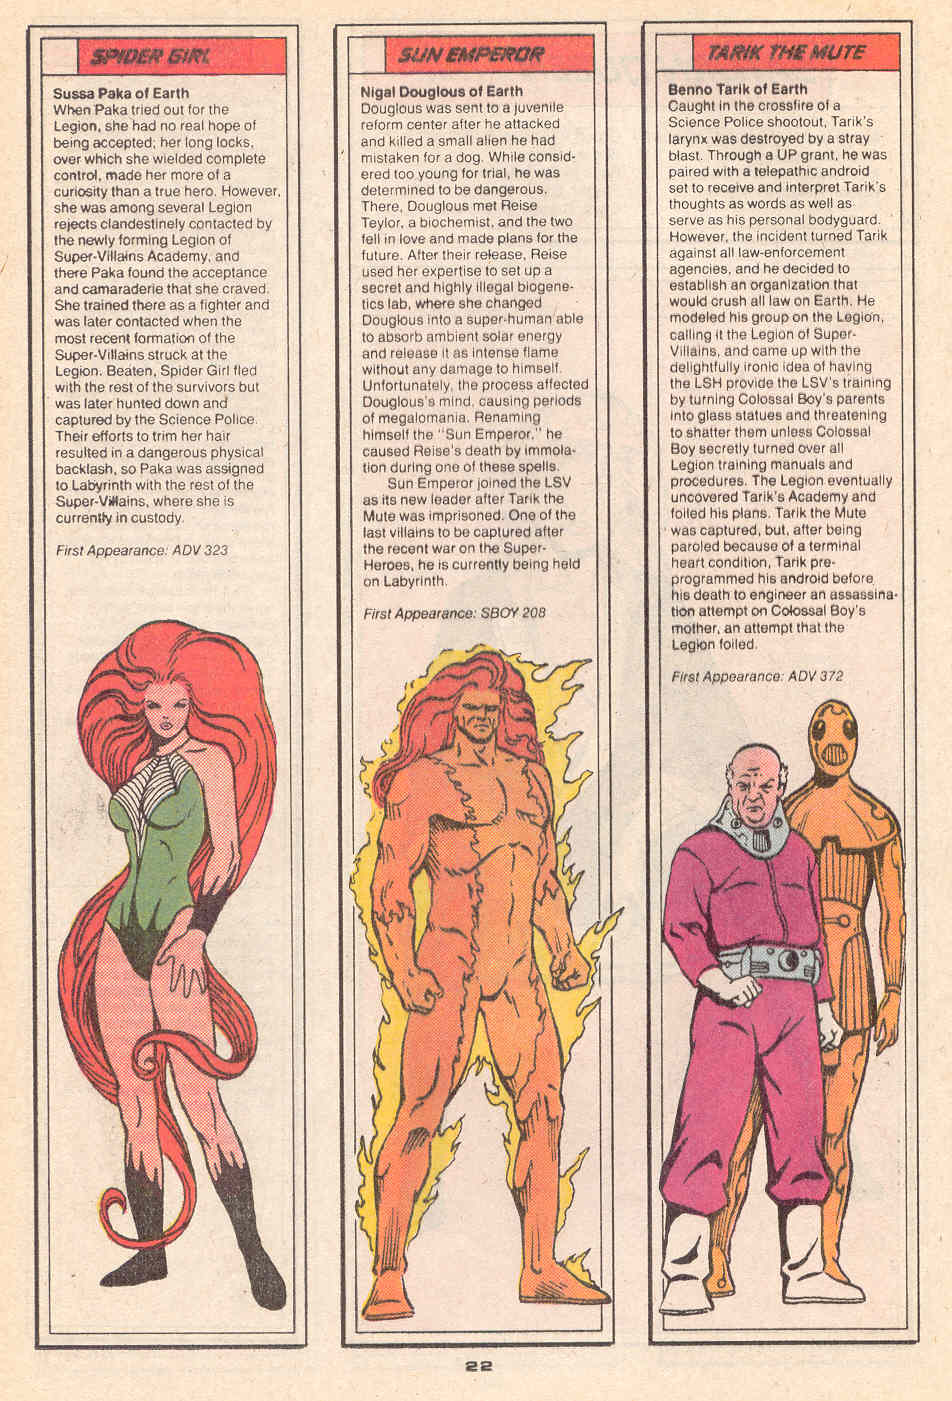 Spider-Girl, Sun Emperor, and Tarik the Mute by Colleen Doran - Who's Who in the Legion of Super-Heroes #4